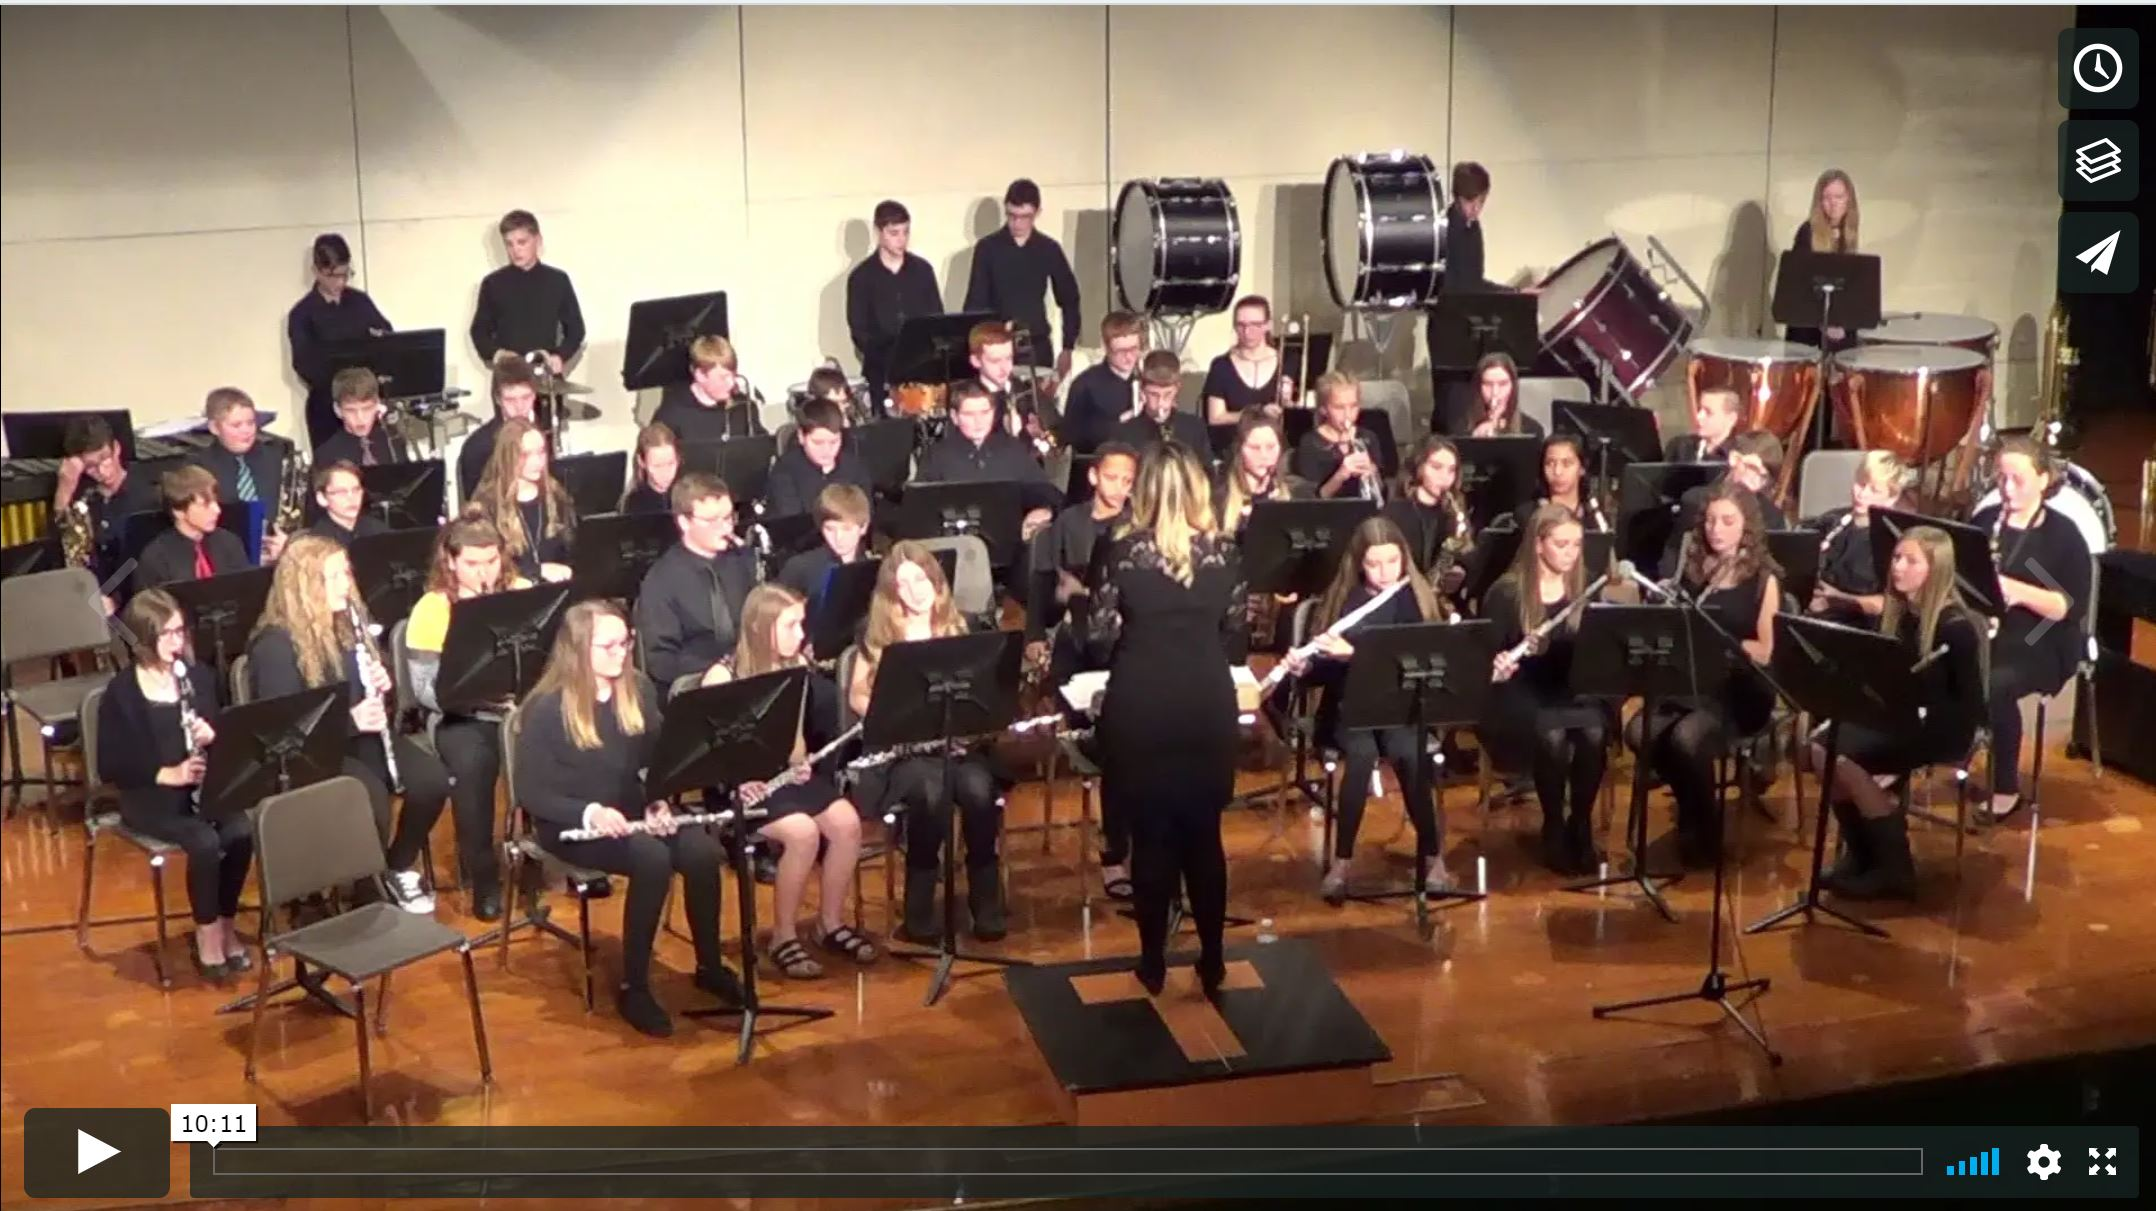 Ortonville School Winter Band Concert